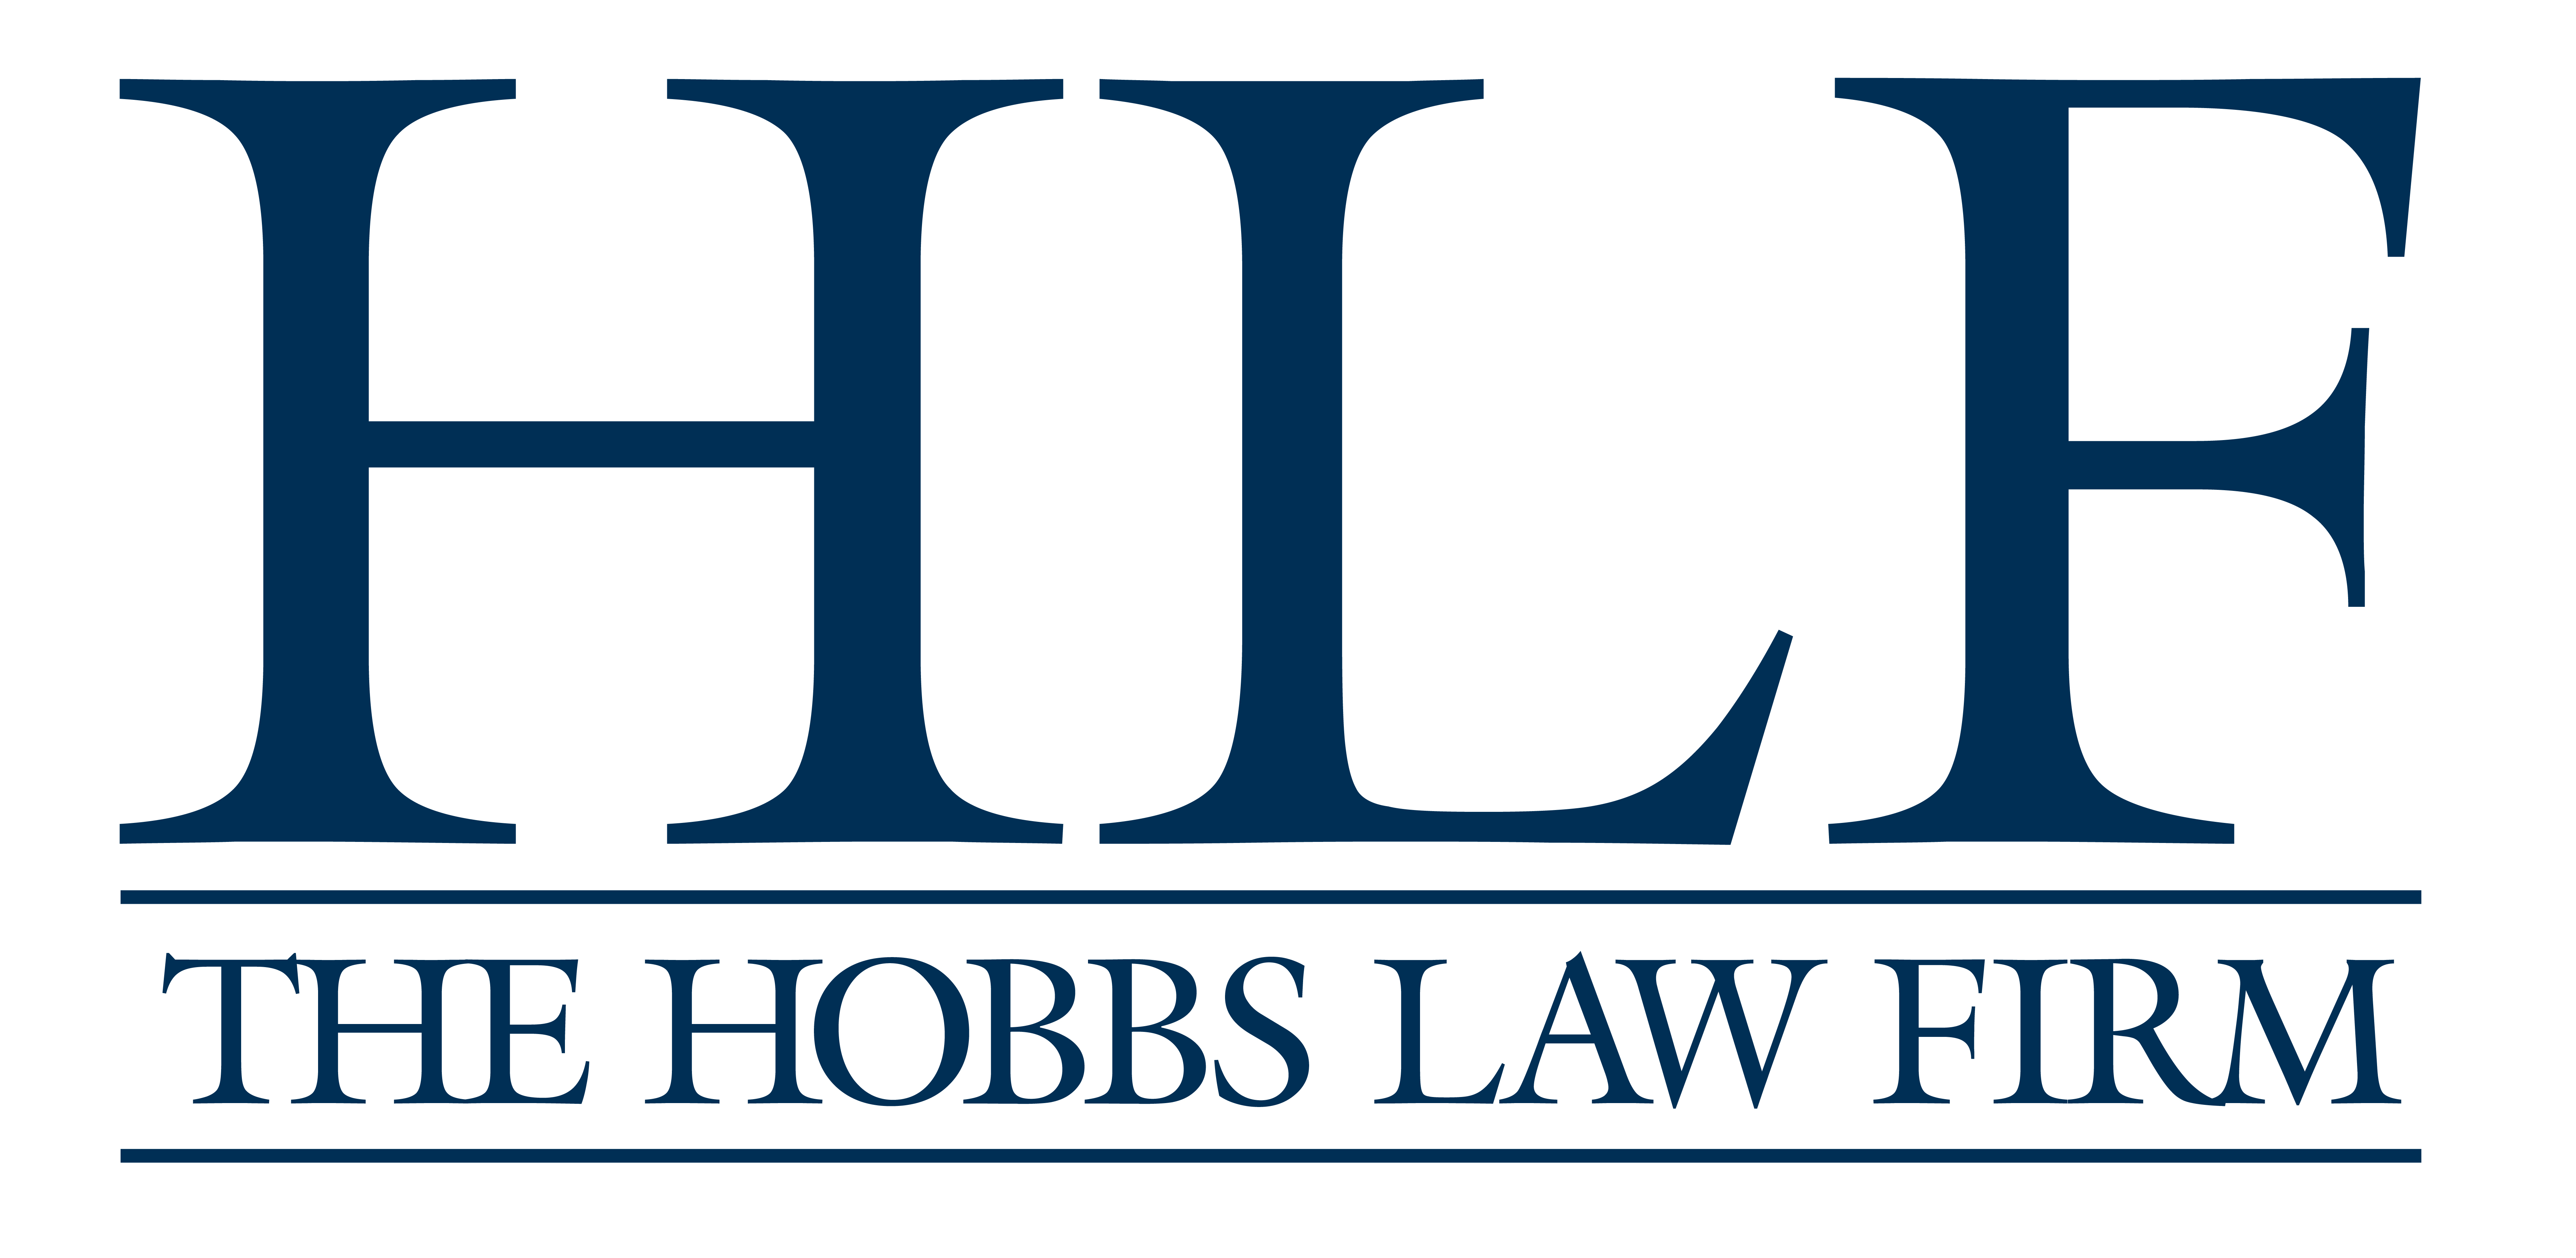 The Hobbs Law Firm